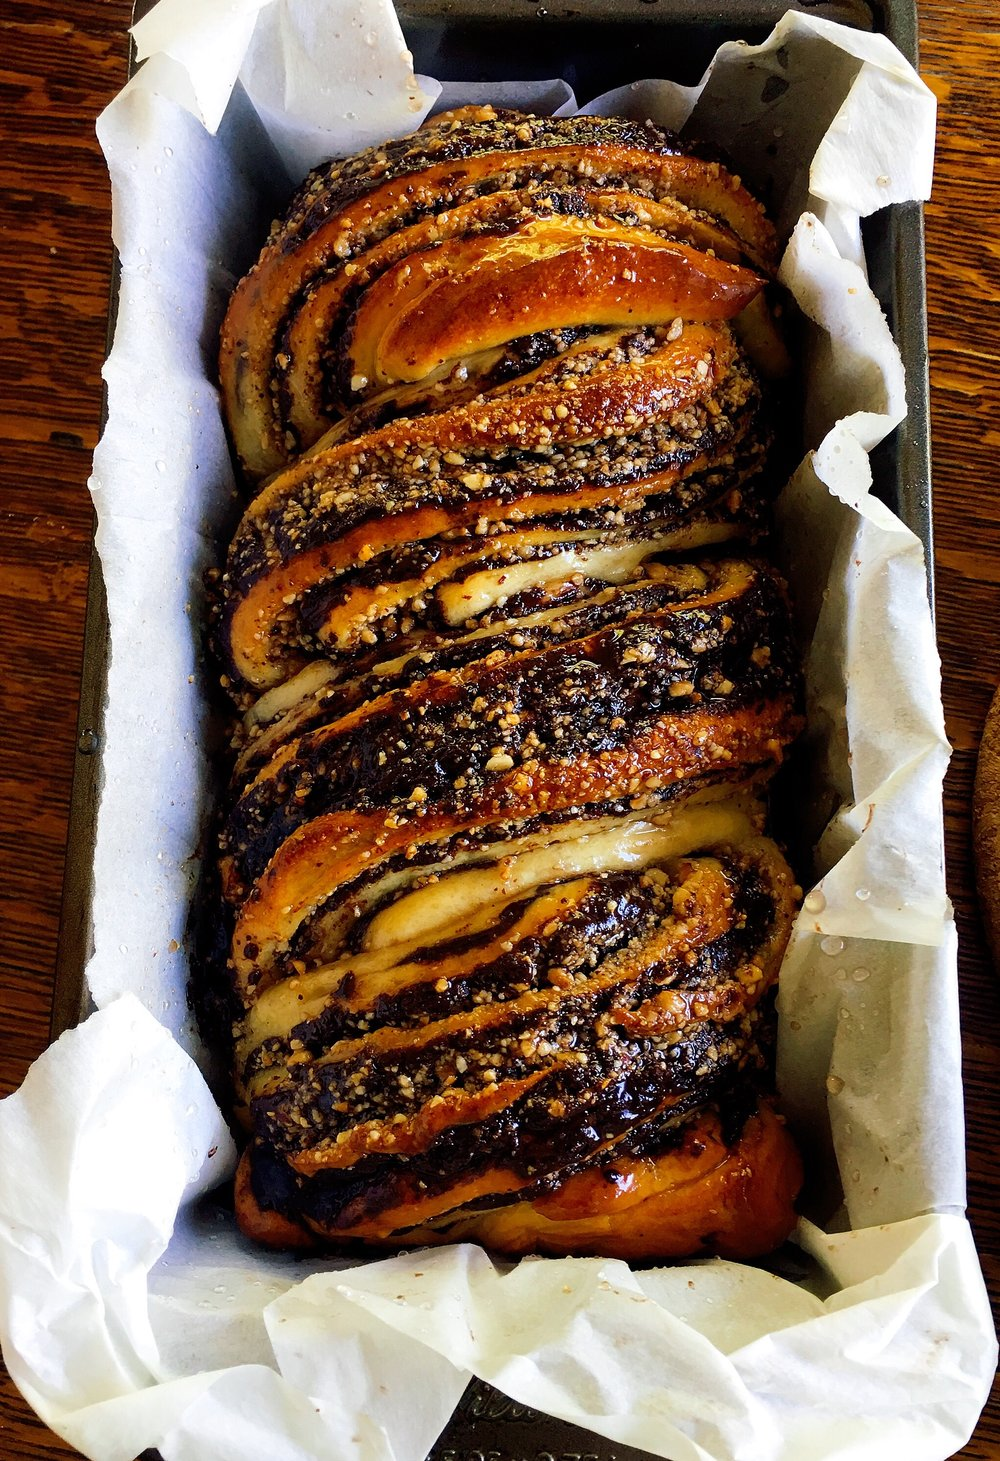 Baked chocolate-hazelnut babka